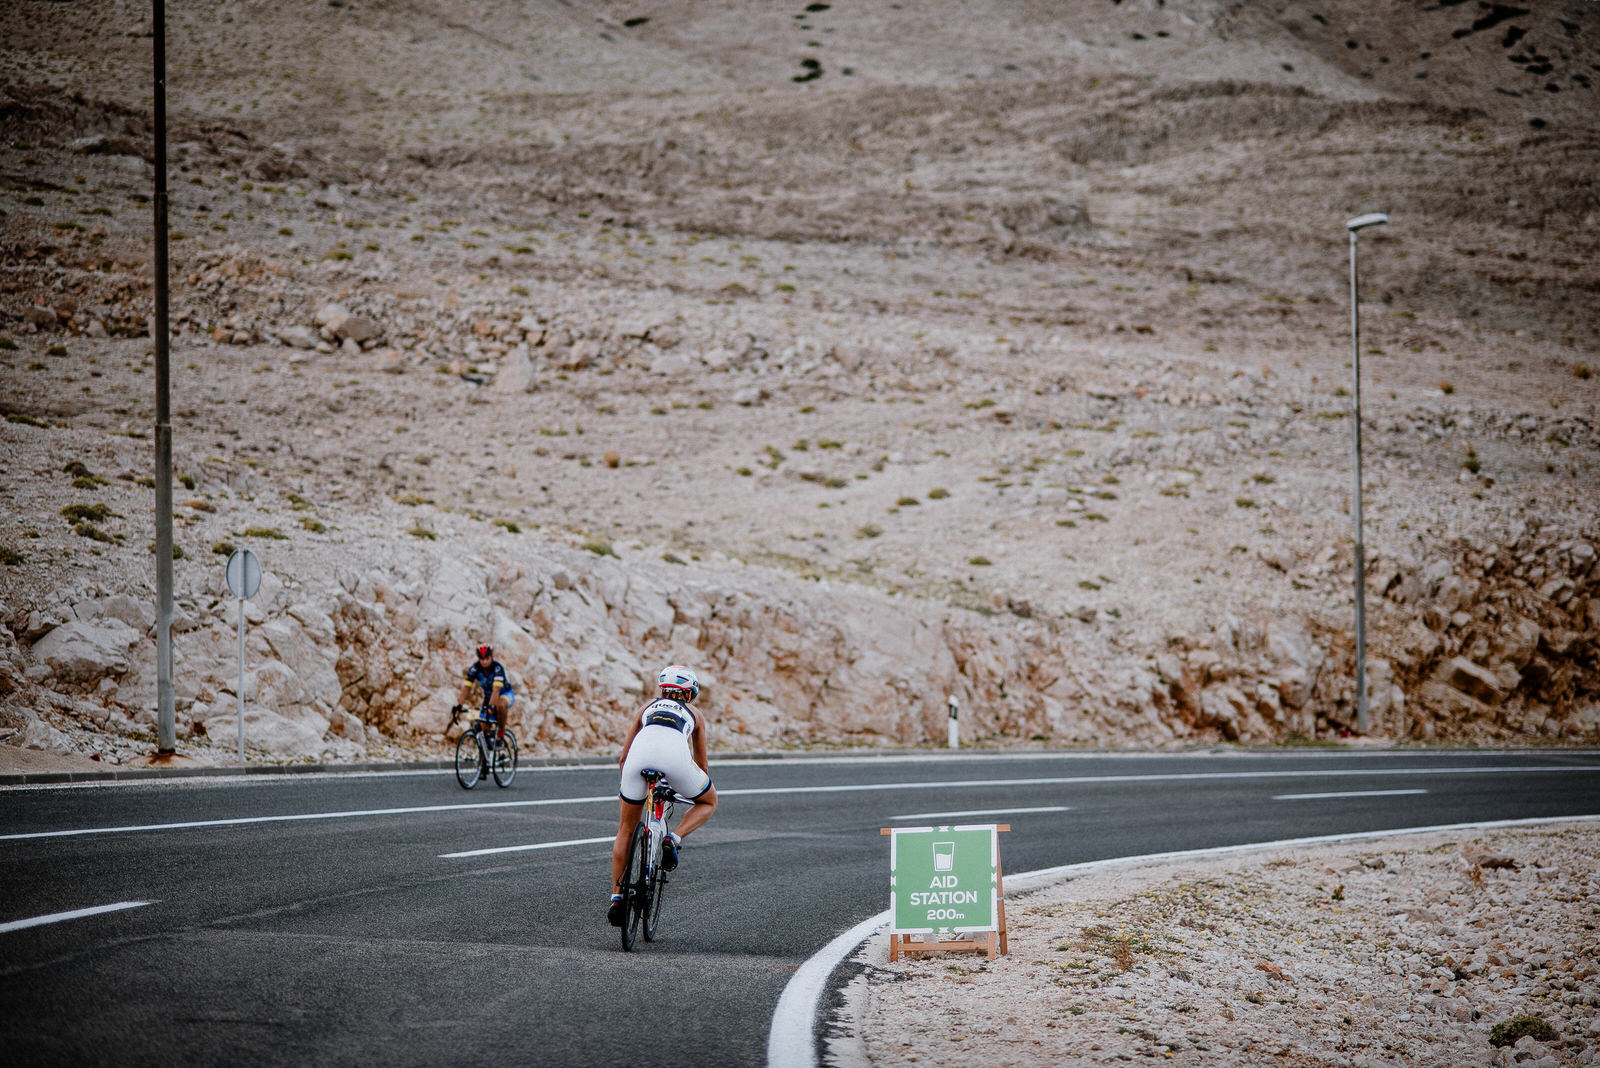 likaclub_Granfondo-Pag-–-Cycling-on-the-Moon_2019-33